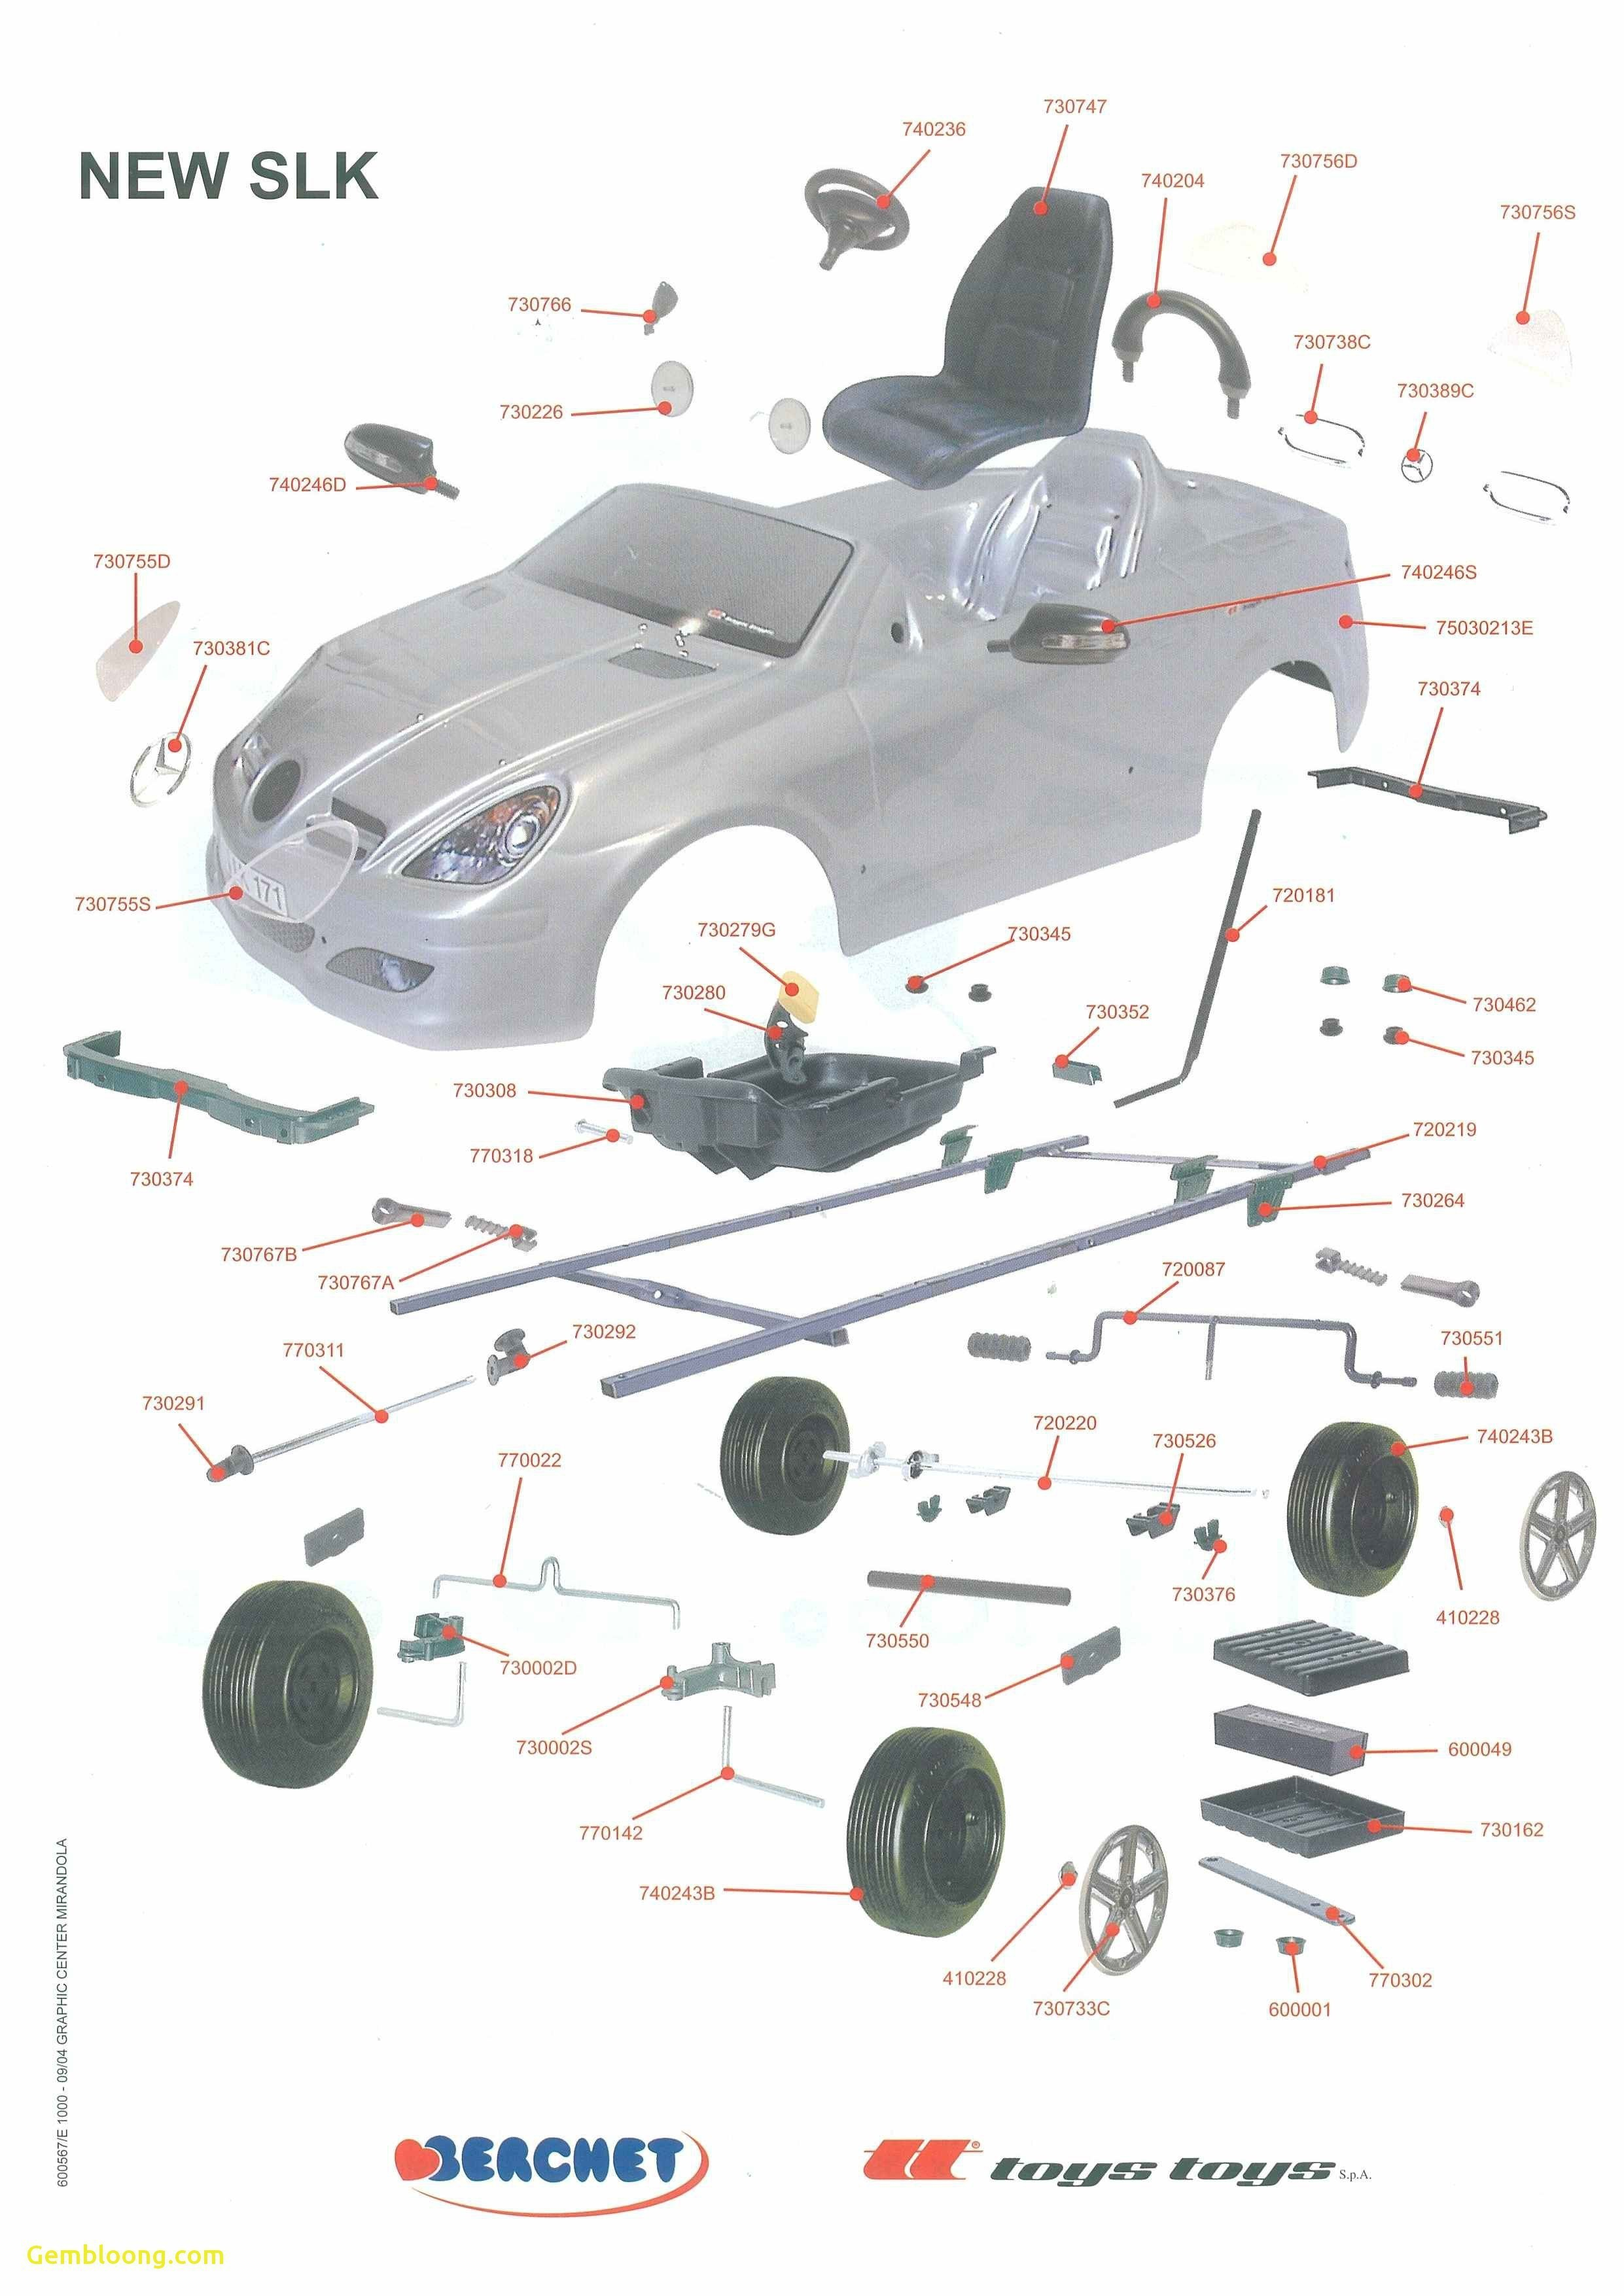 Diagram Of Car Parts Awesome Car Free Body Diagram Of Diagram Of Car Parts